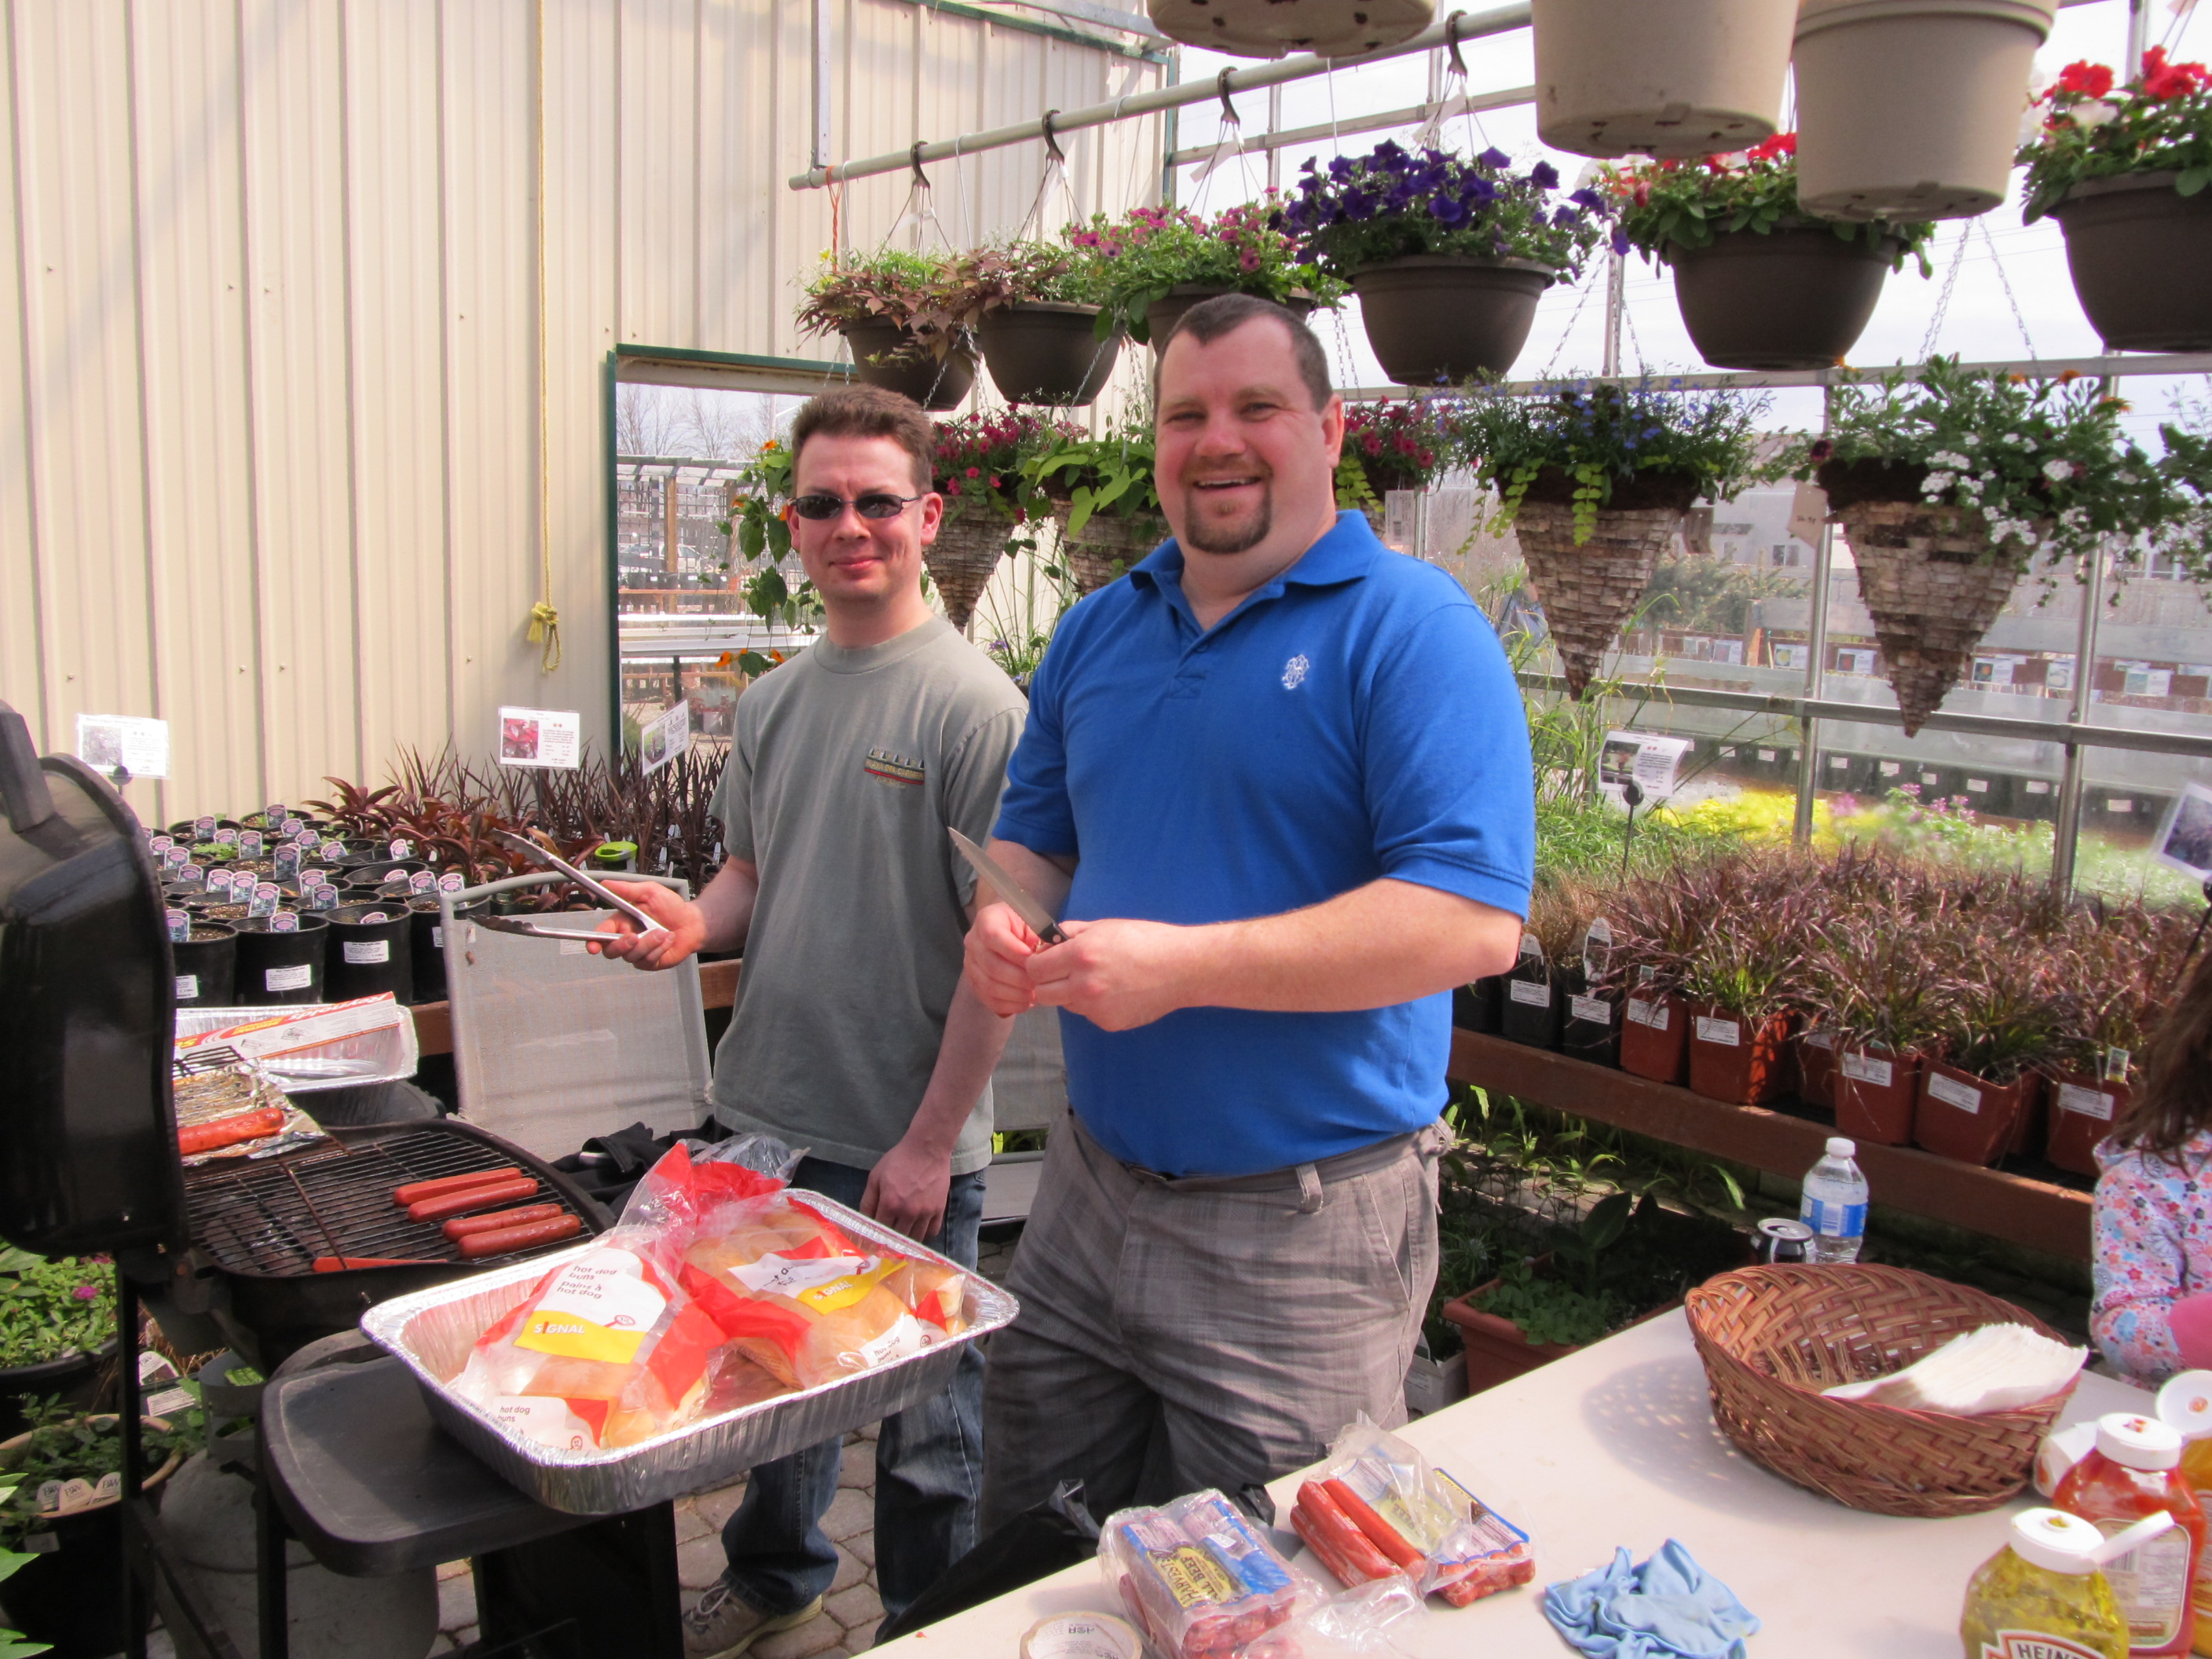 kick off to spring party, sales., deals, free draws, free hotdogs, free cake, jensen nursery and garden center, spring deals